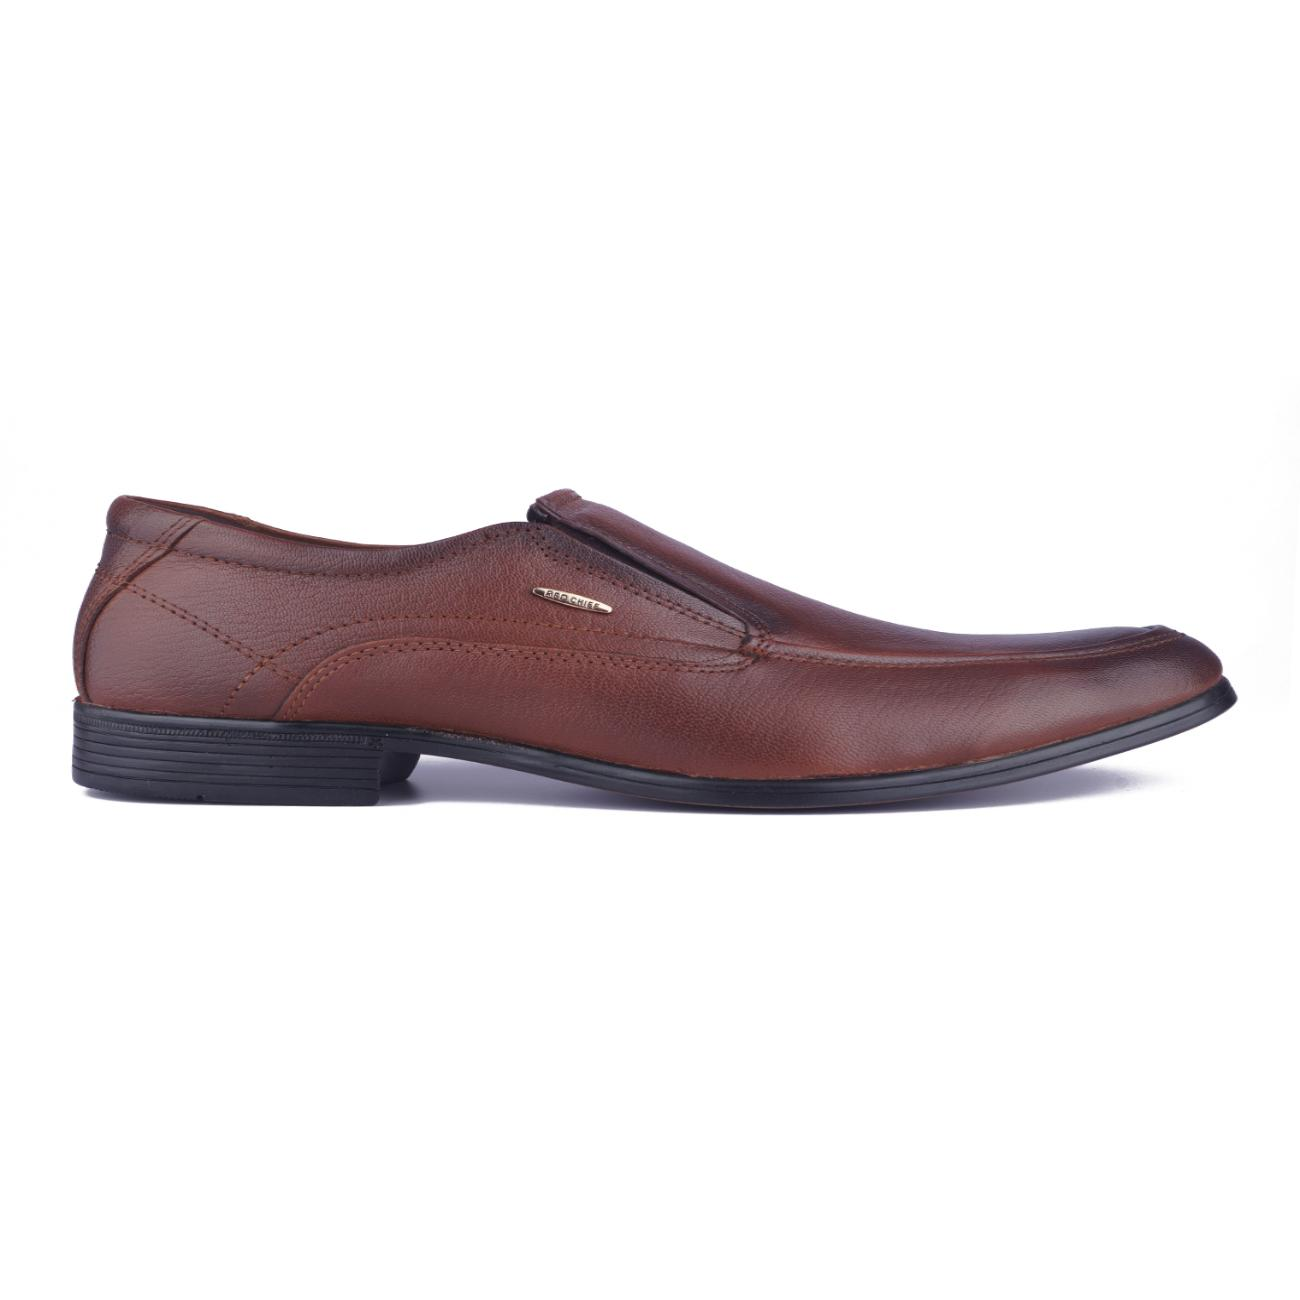 buy tan leather slip-on formal shoes side view_1